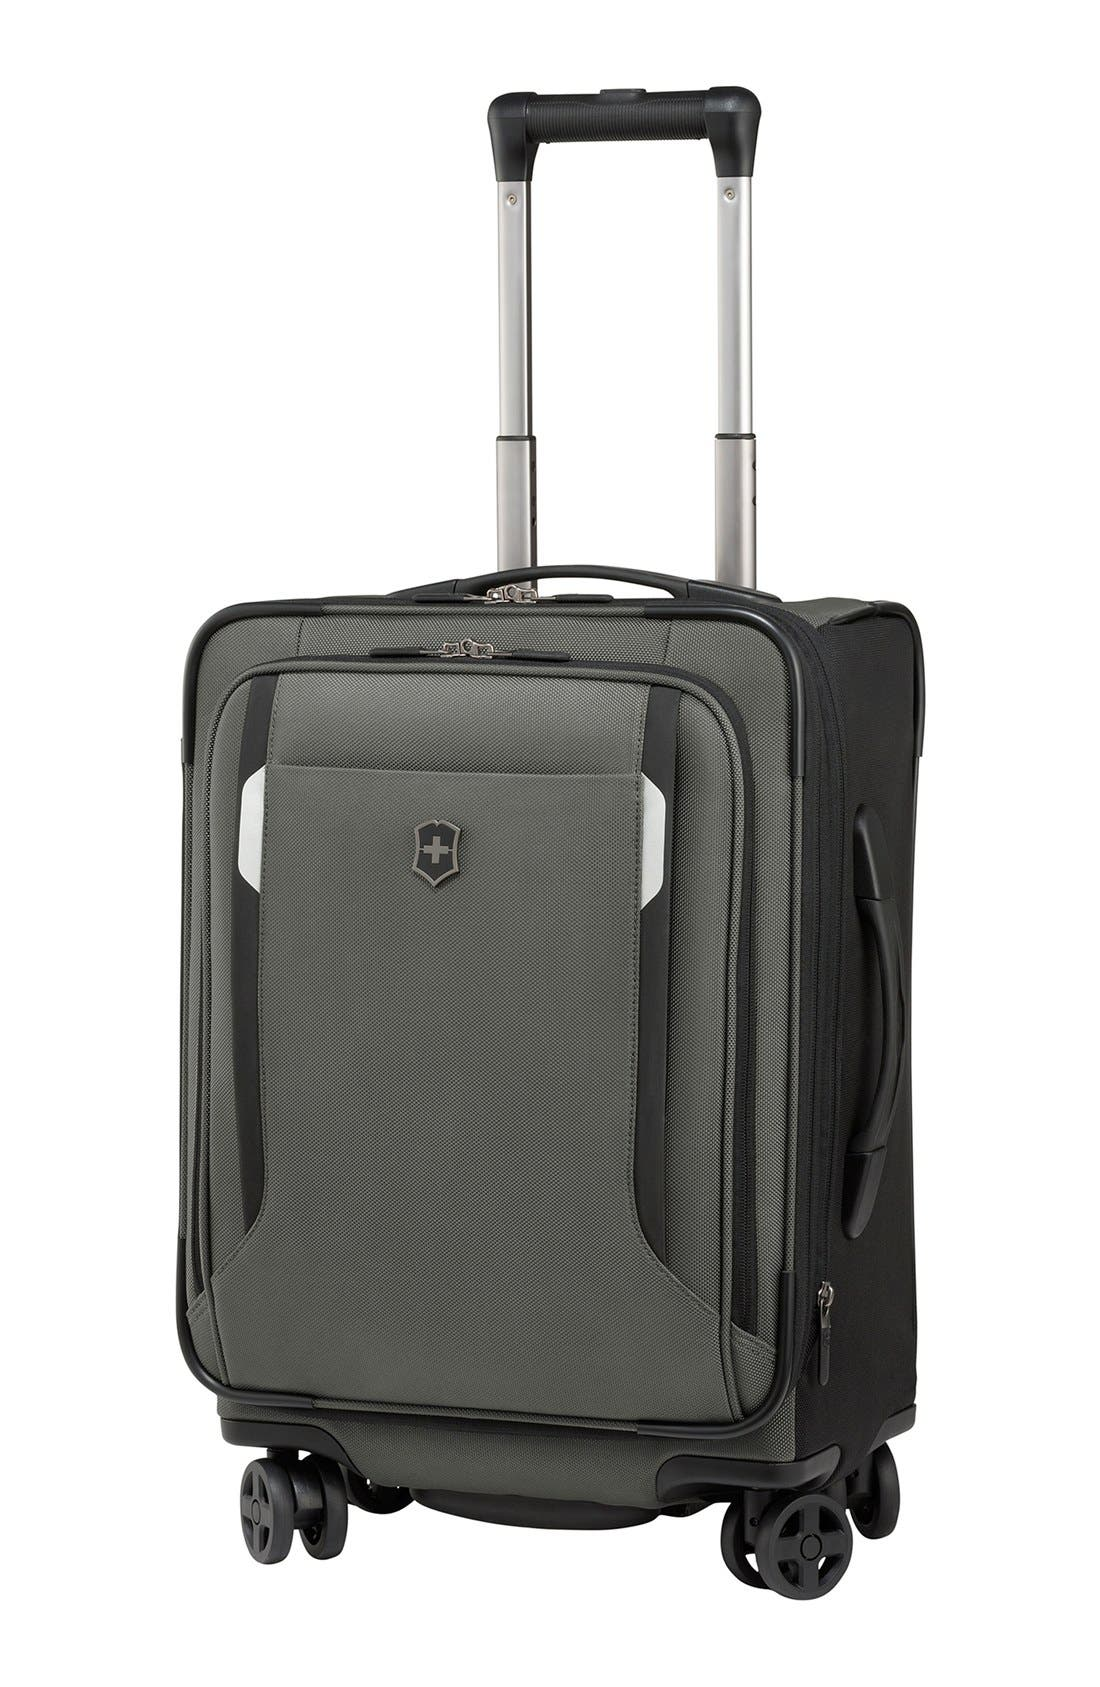 Alternate Image 1 Selected - Victorinox Swiss Army® 'WT 5.0' Dual Caster Wheeled Carry-On (20 Inch)